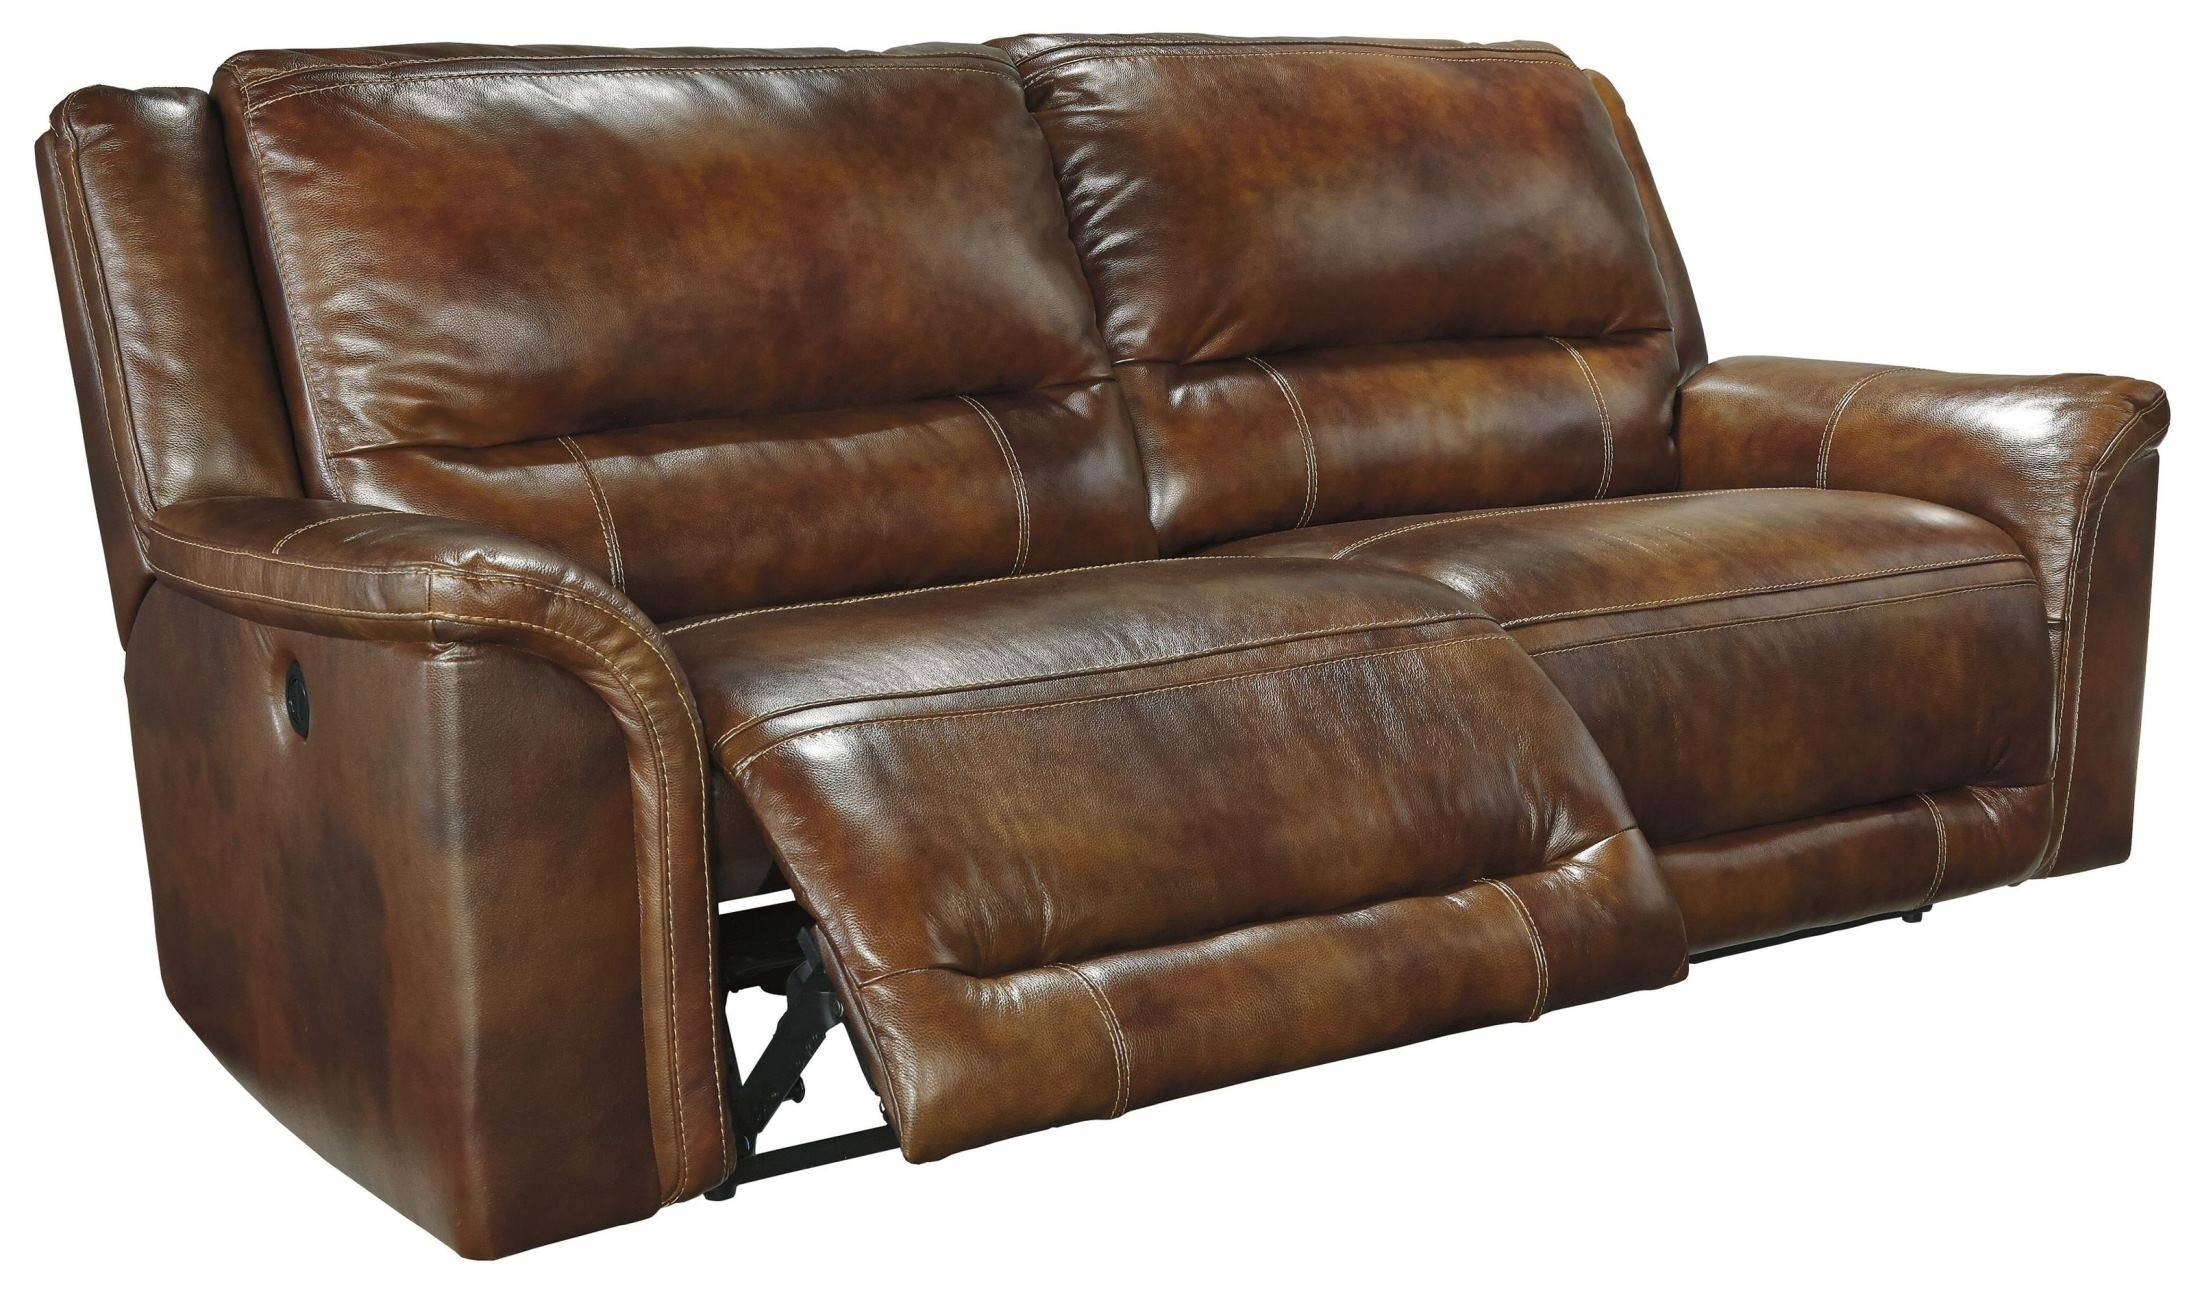 recliner 2 seater sofas leather camel sofa decorating ideas 30 the best